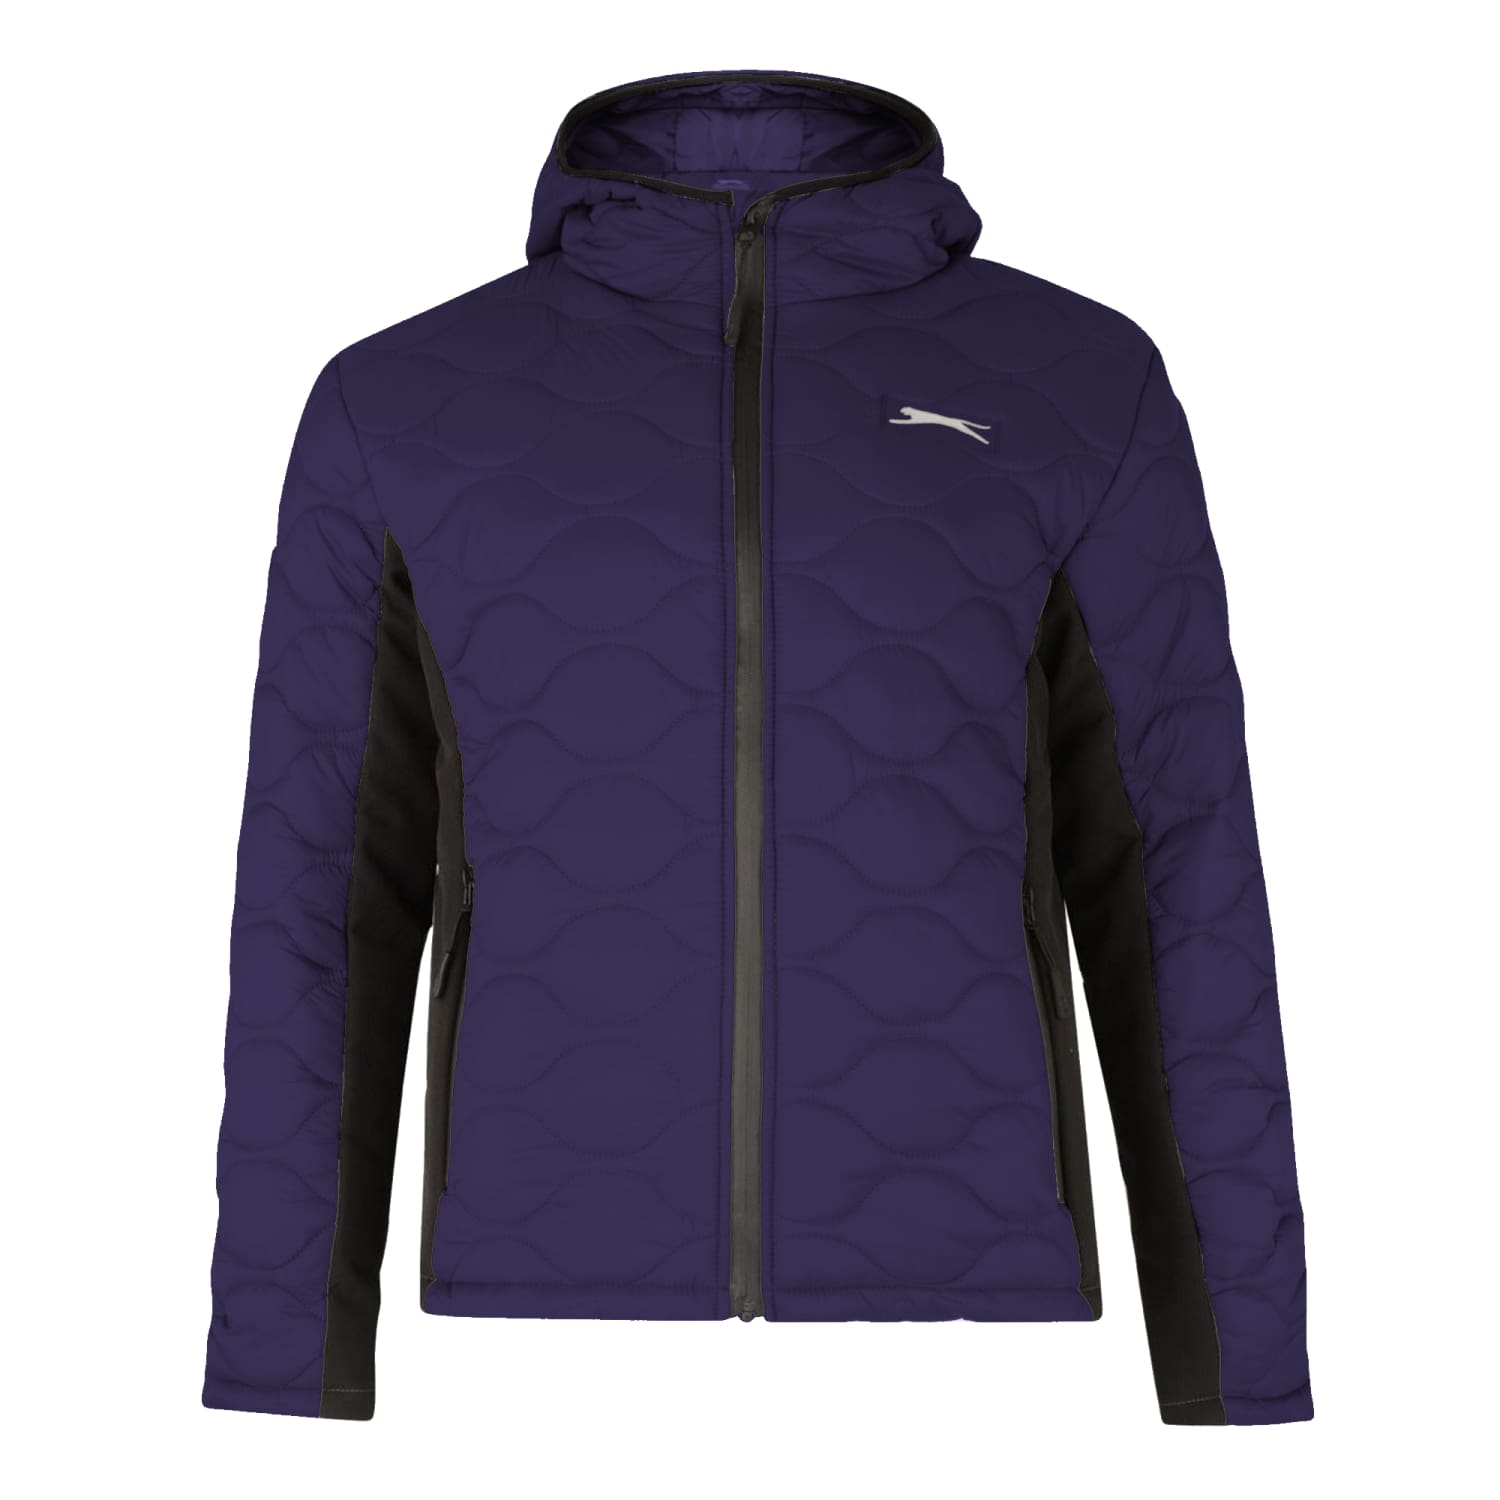 Slazenger Padded Jacket - Cash - Eclipse 1